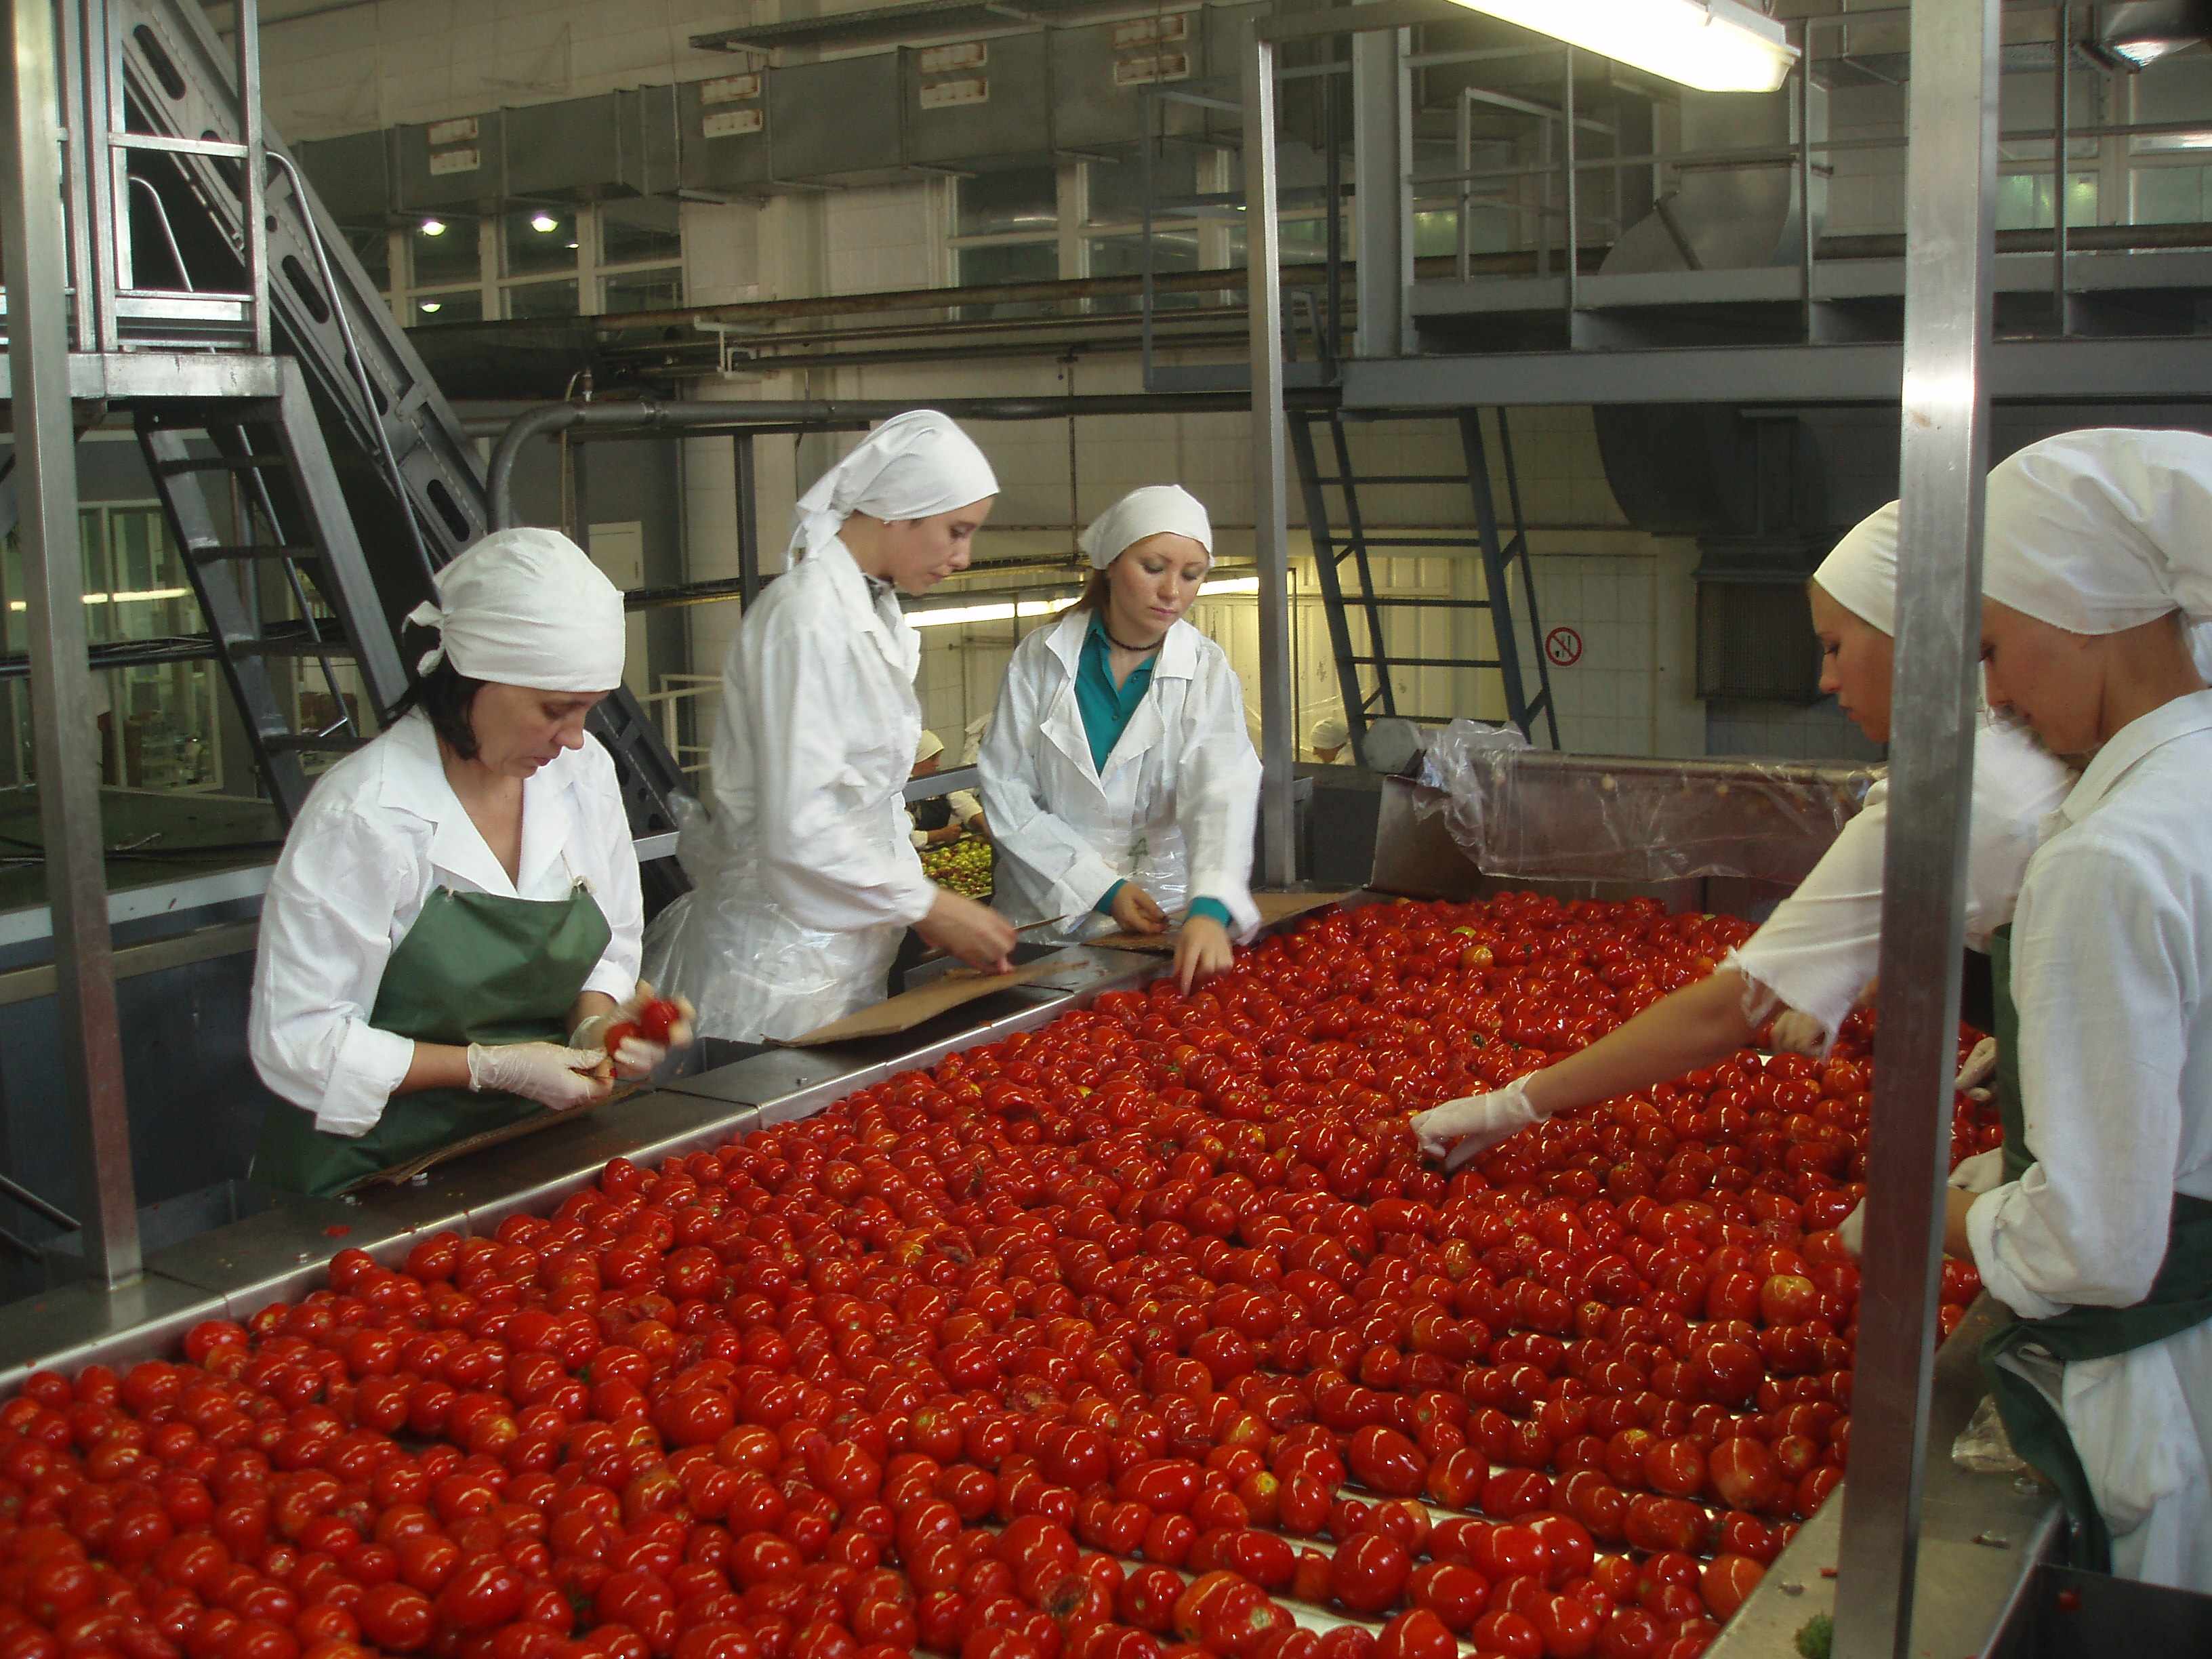 Women sorting tomatoes on a conveyor belt at an agricultural processing plant.